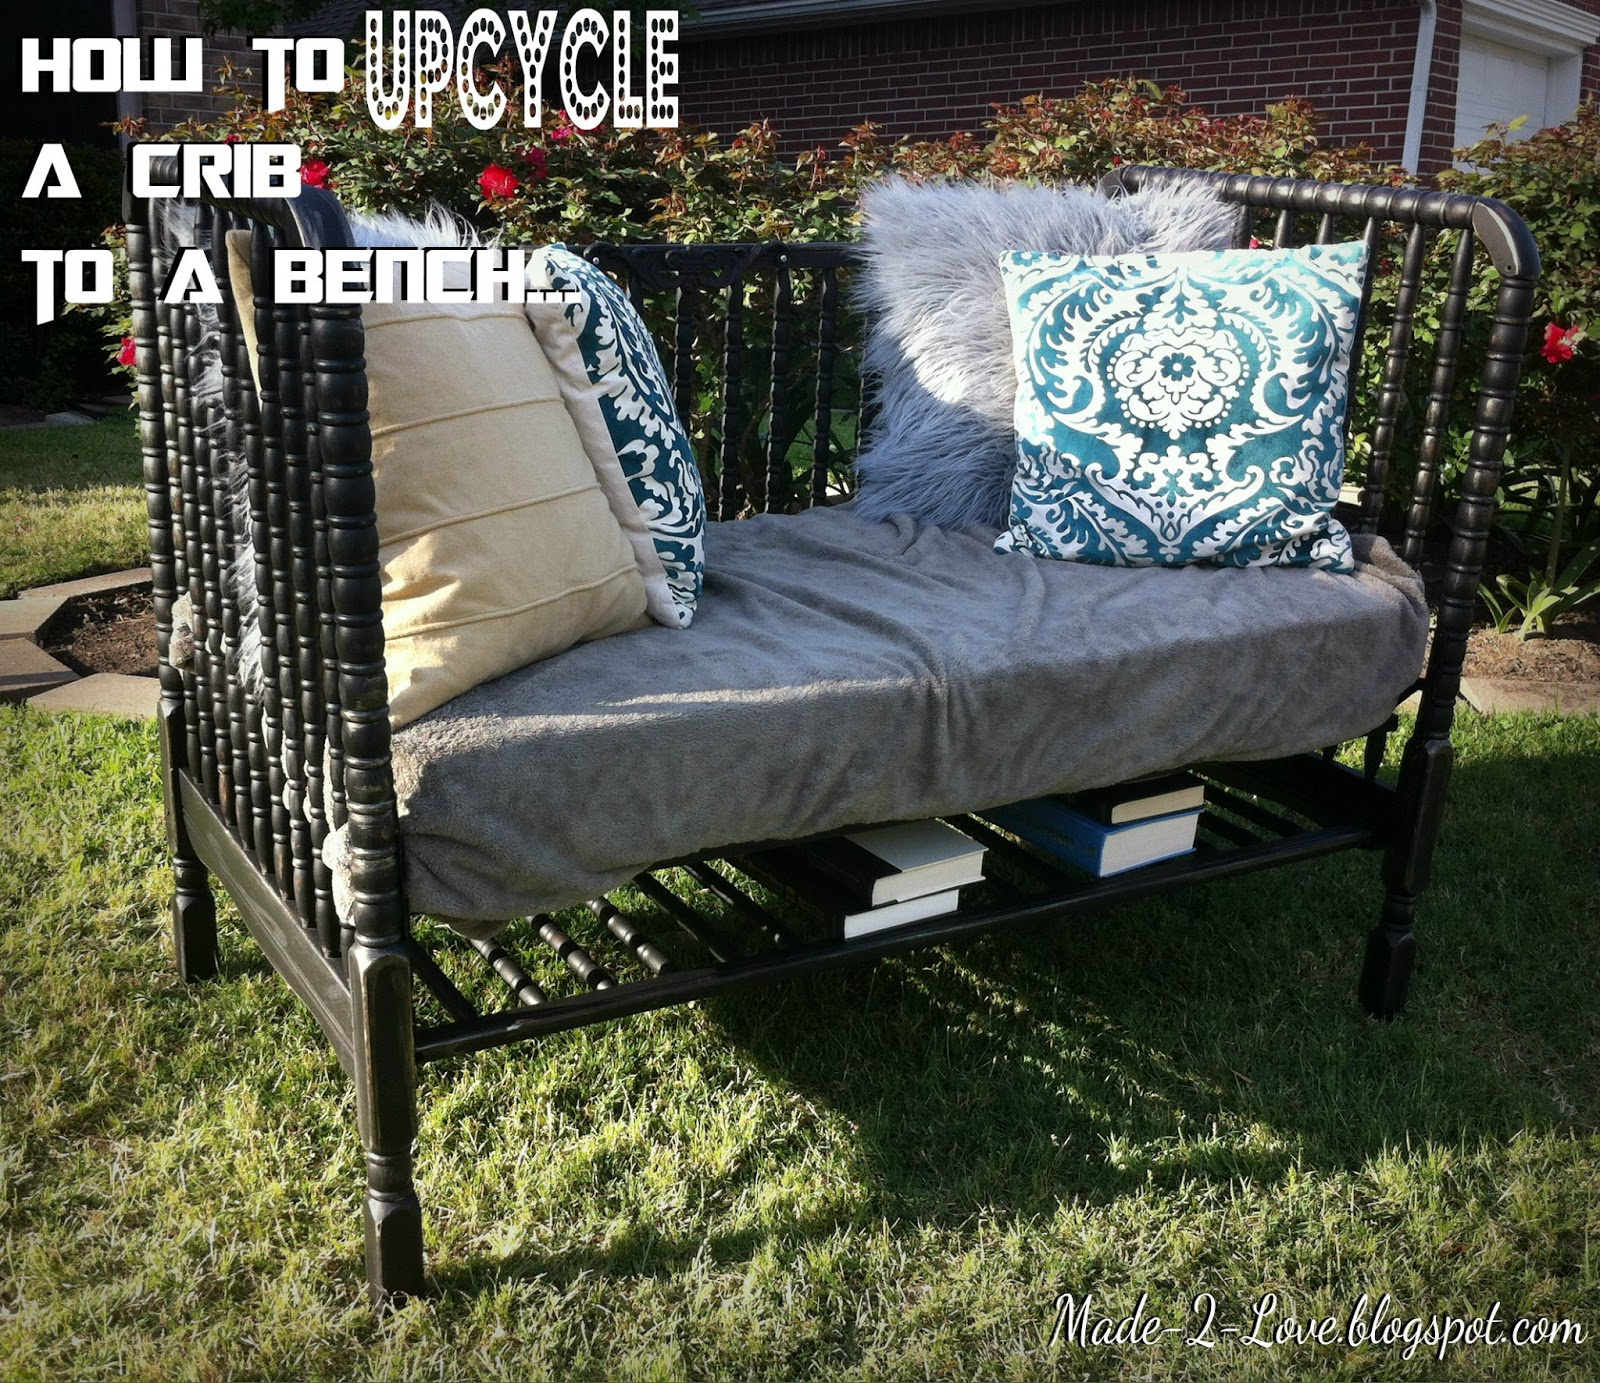 Superb Made To Love Upcycled Crib To A Bench Uwap Interior Chair Design Uwaporg